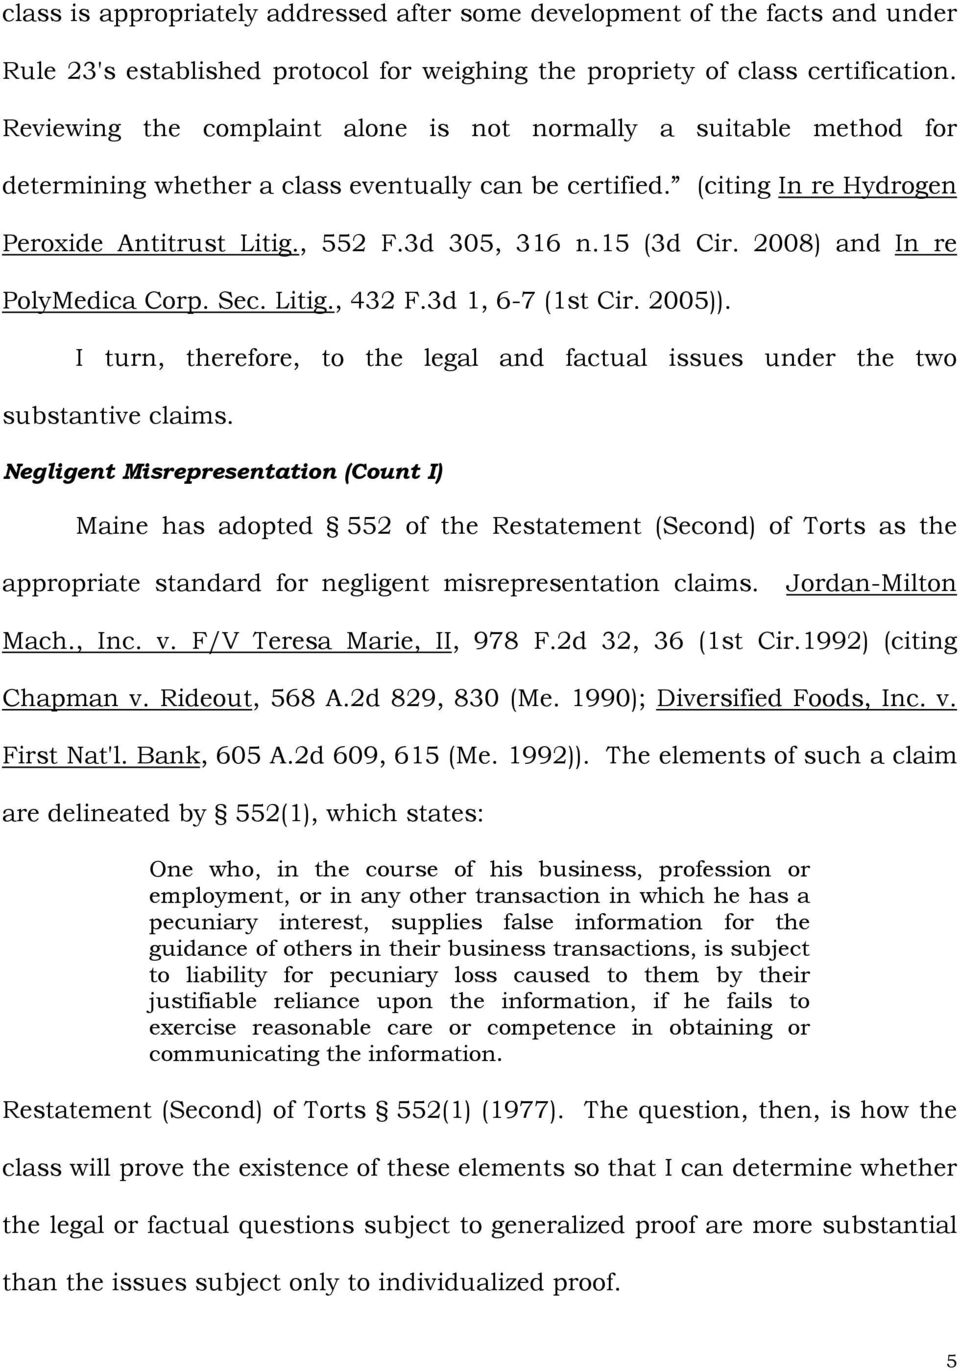 15 (3d Cir. 2008) and In re PolyMedica Corp. Sec. Litig., 432 F.3d 1, 6-7 (1st Cir. 2005)). I turn, therefore, to the legal and factual issues under the two substantive claims.